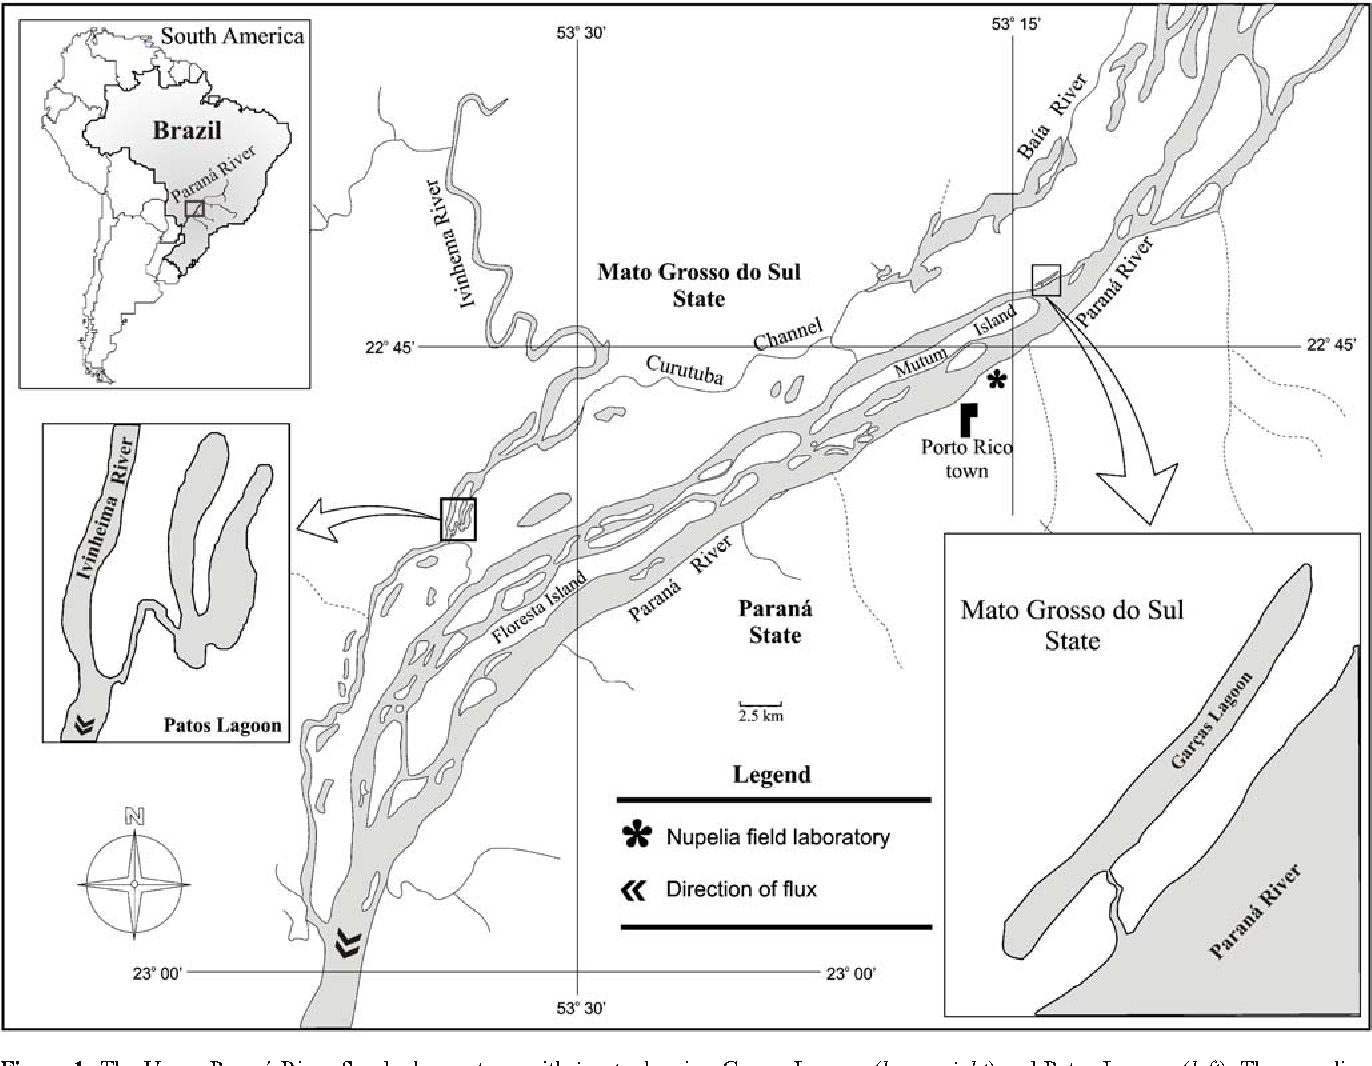 Figure 1 The Upper Paraná River floodpulse system, with insets showing Garças Lagoon (lower right) and Patos Lagoon (left). The sampling locations are shown by the * in each inset